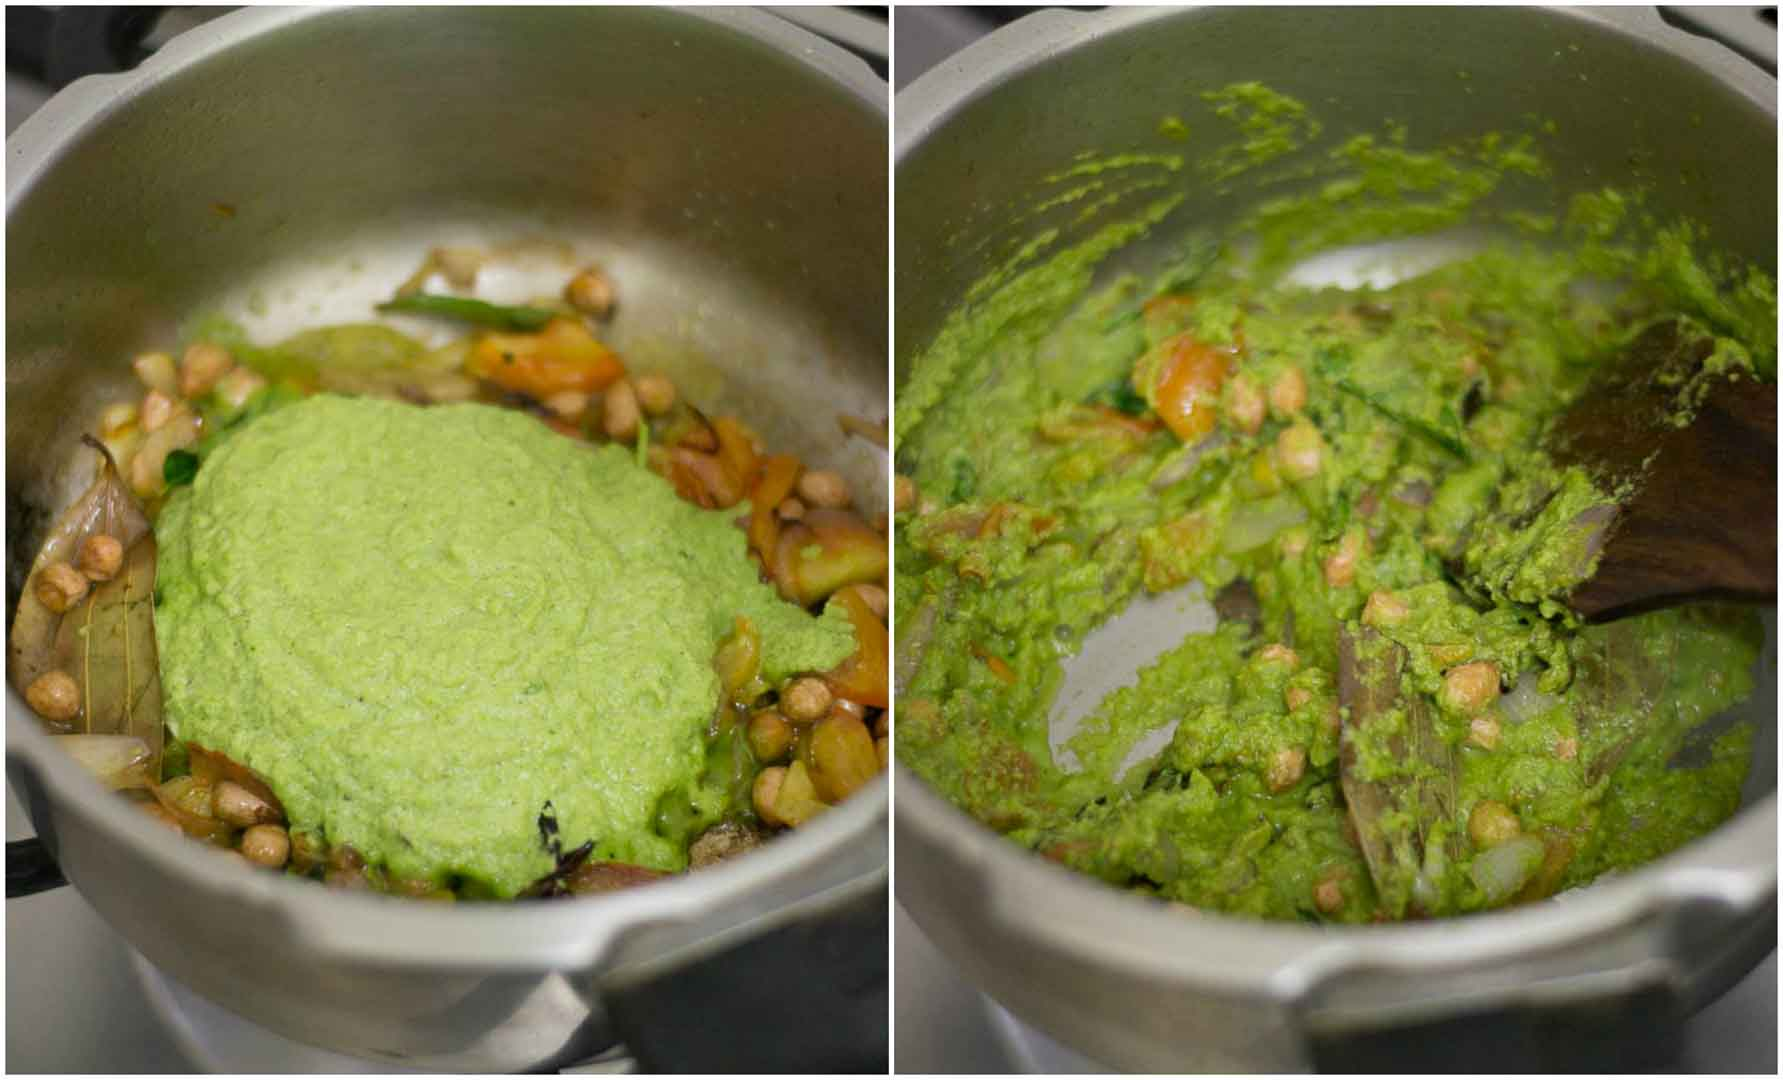 tarkari-palav-karnataka-vegetable-palav-recipe-6